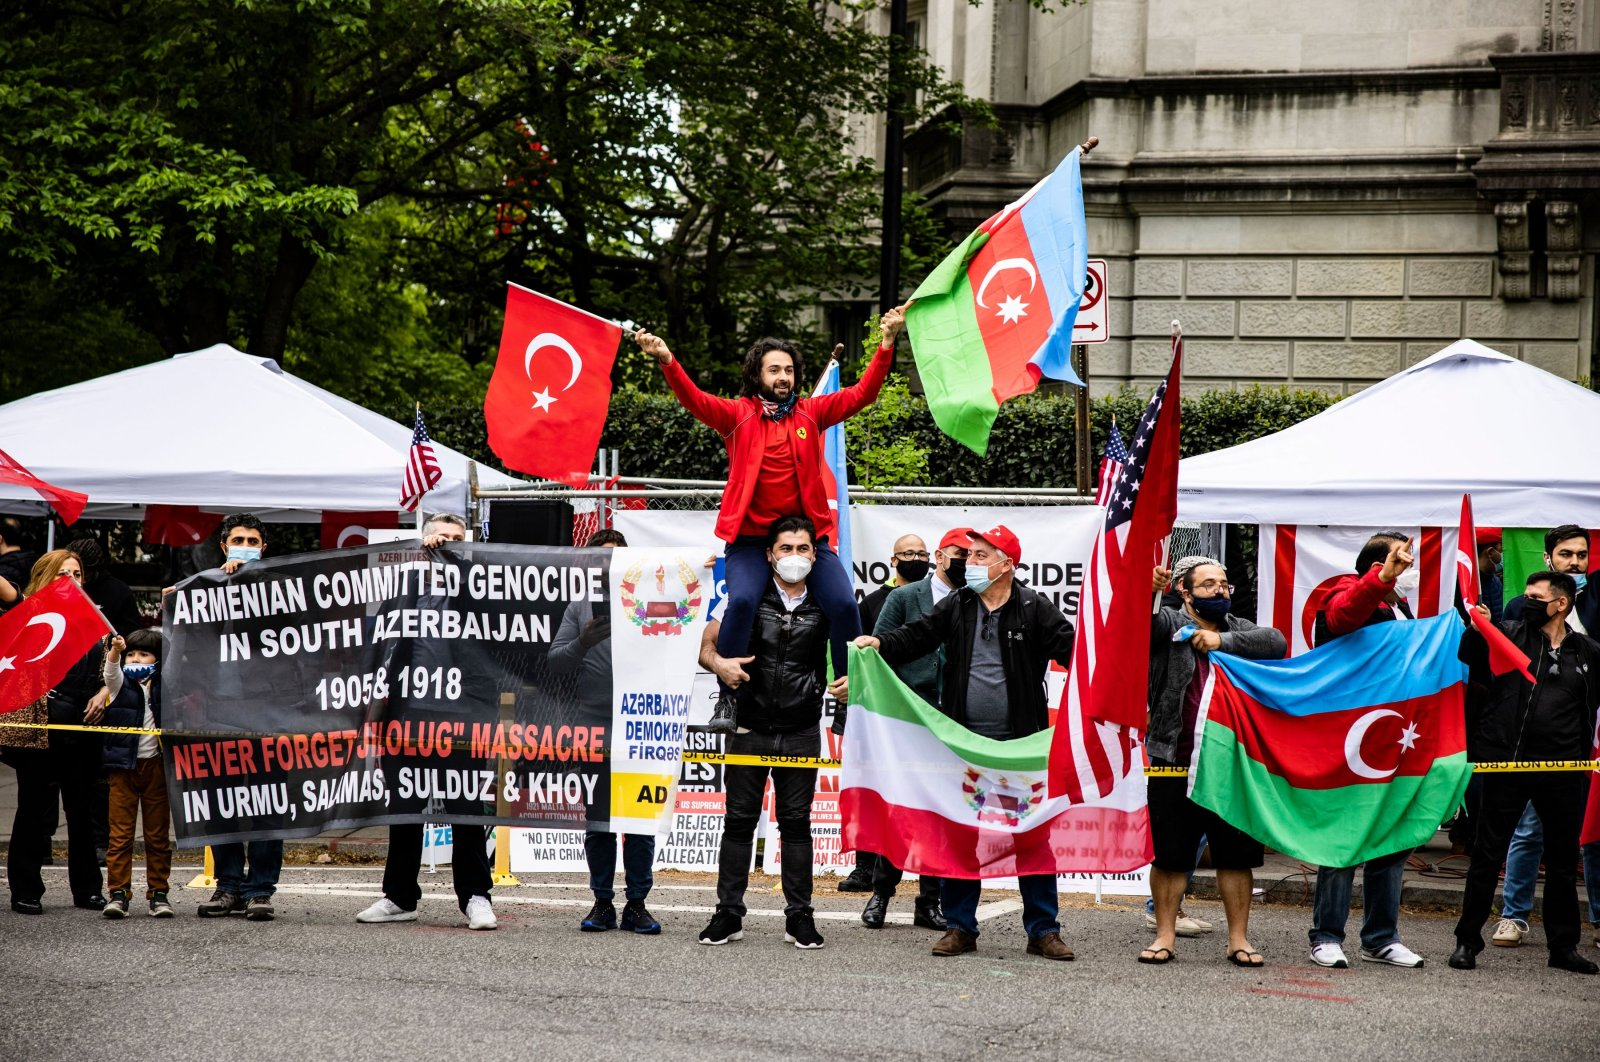 A group of Turkish protestors stands outside the Turkish ambassador's residence across from Armenian protestors on the 106th anniversary of the 1915 Armenian Events in Washington, D.C., U.S., April 24, 2021. (AFP Photo)